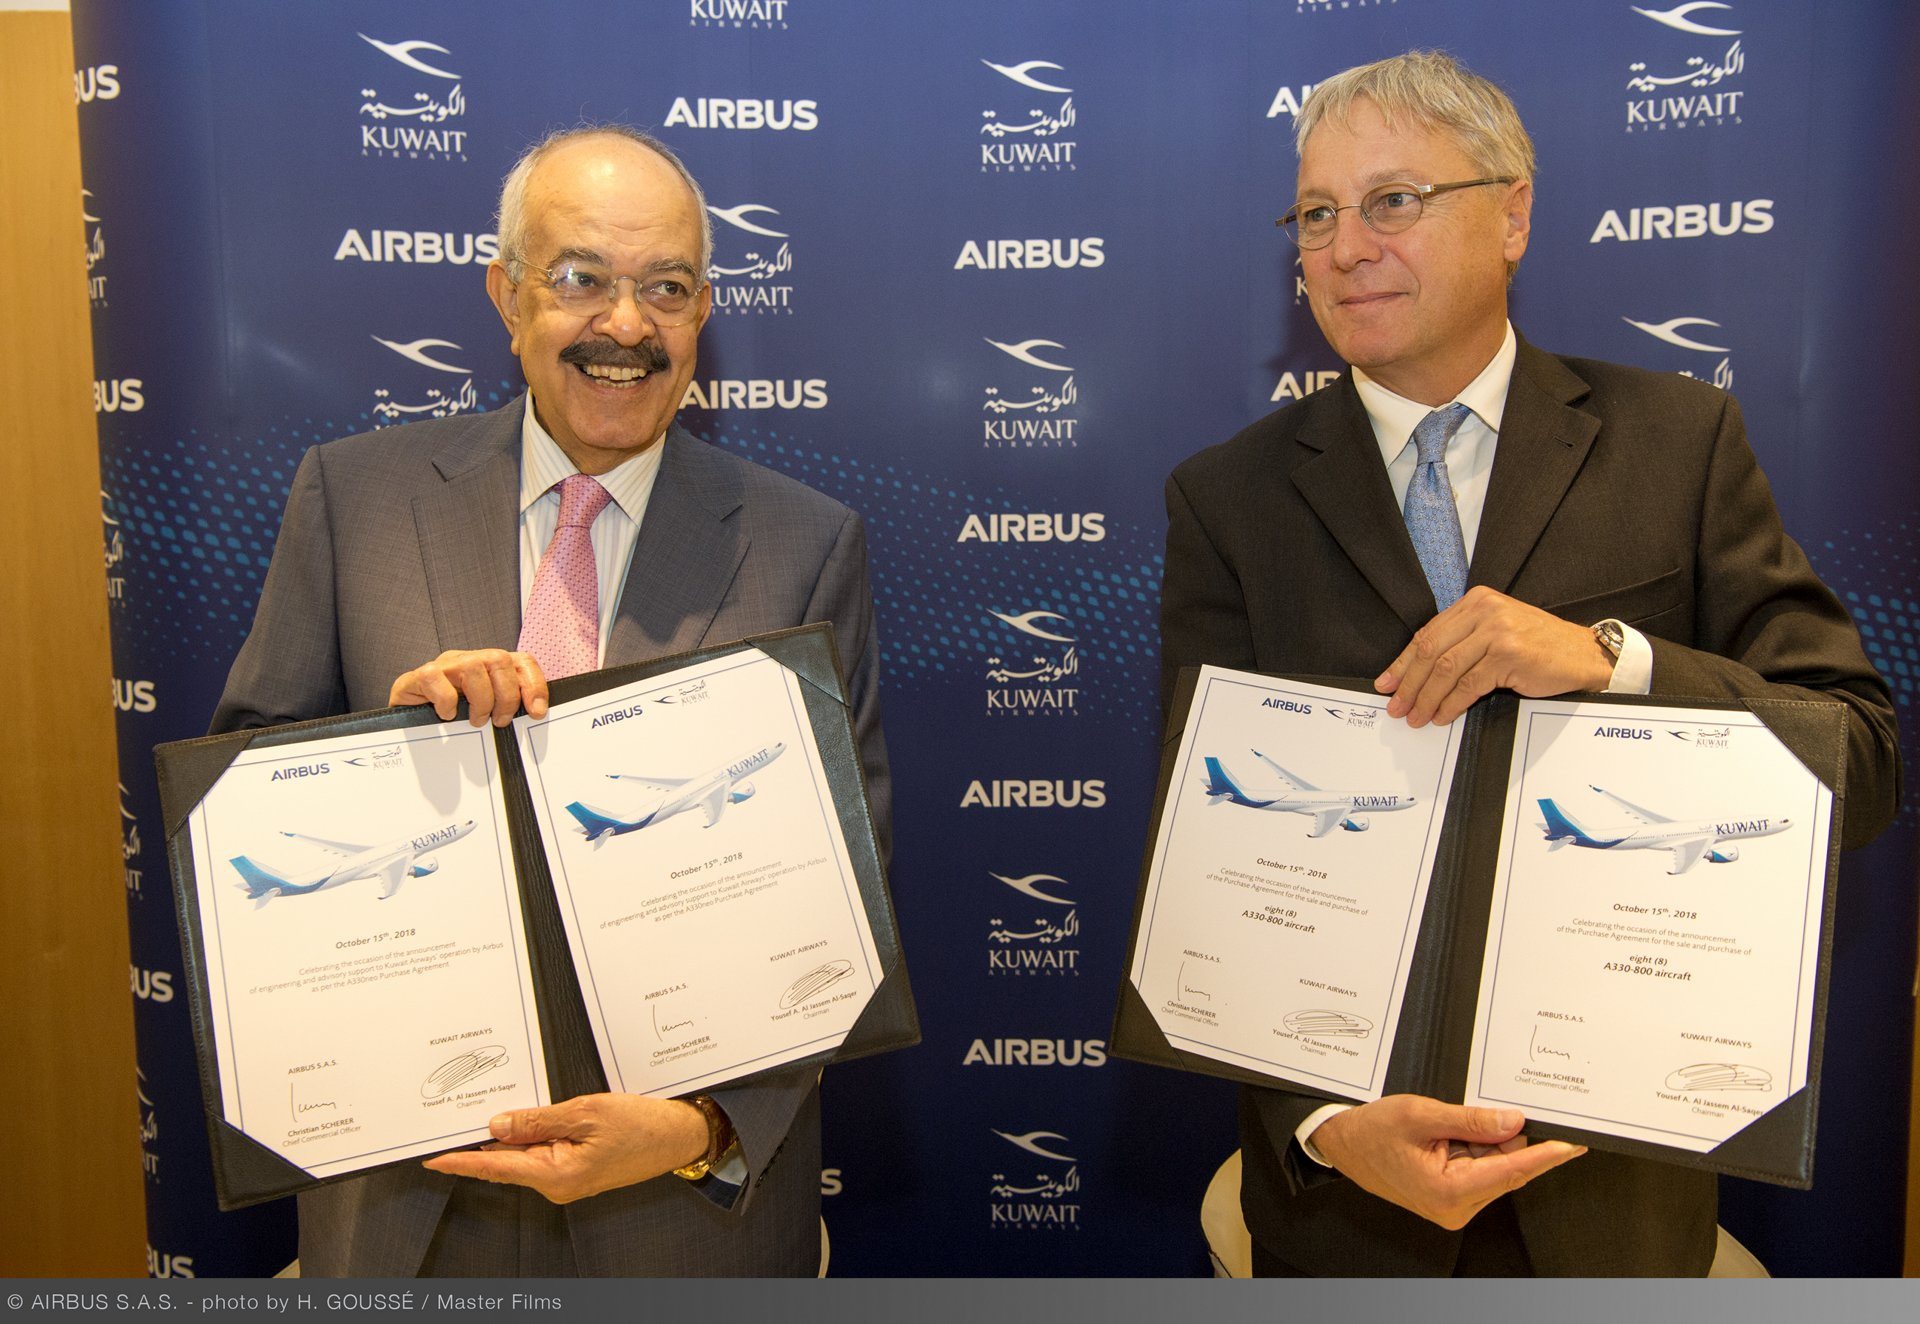 Kuwait Airways' purchase agreement for eight A330-800 aircraft was signed in Toulouse, France by Kuwait Airways Chairman Yousef Al-Jassim and Christian Scherer, Airbus Chief Commercial Officer (left to right)